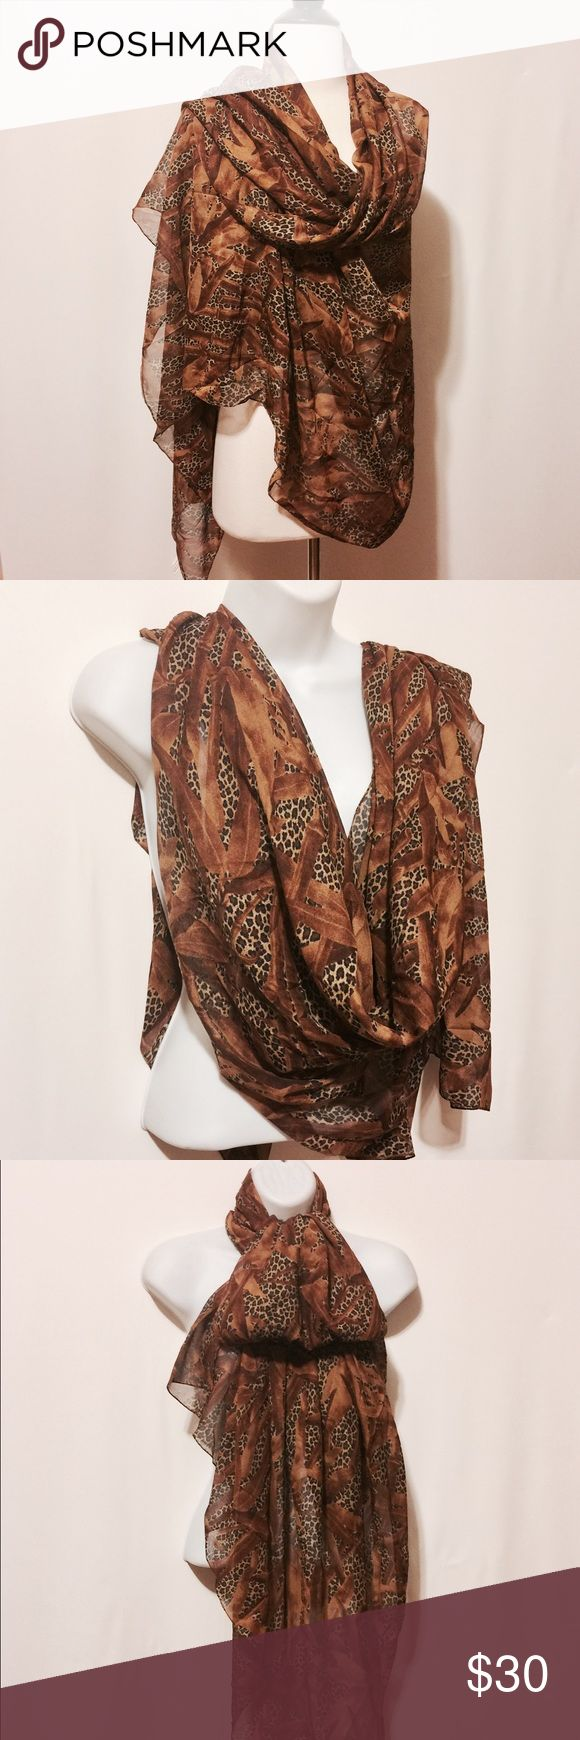 ✨ Extra Large Animal Print Chiffon Wrap Fantastic versatile wrap. This generous size wrap is the perfect vacation accessory. Wear it as a wrap to dress up a little black dress, as a sarong to walk the beach. The possibles are end less.  Made in Italy   100% Poly   Hand Wash Accessories Scarves & Wraps